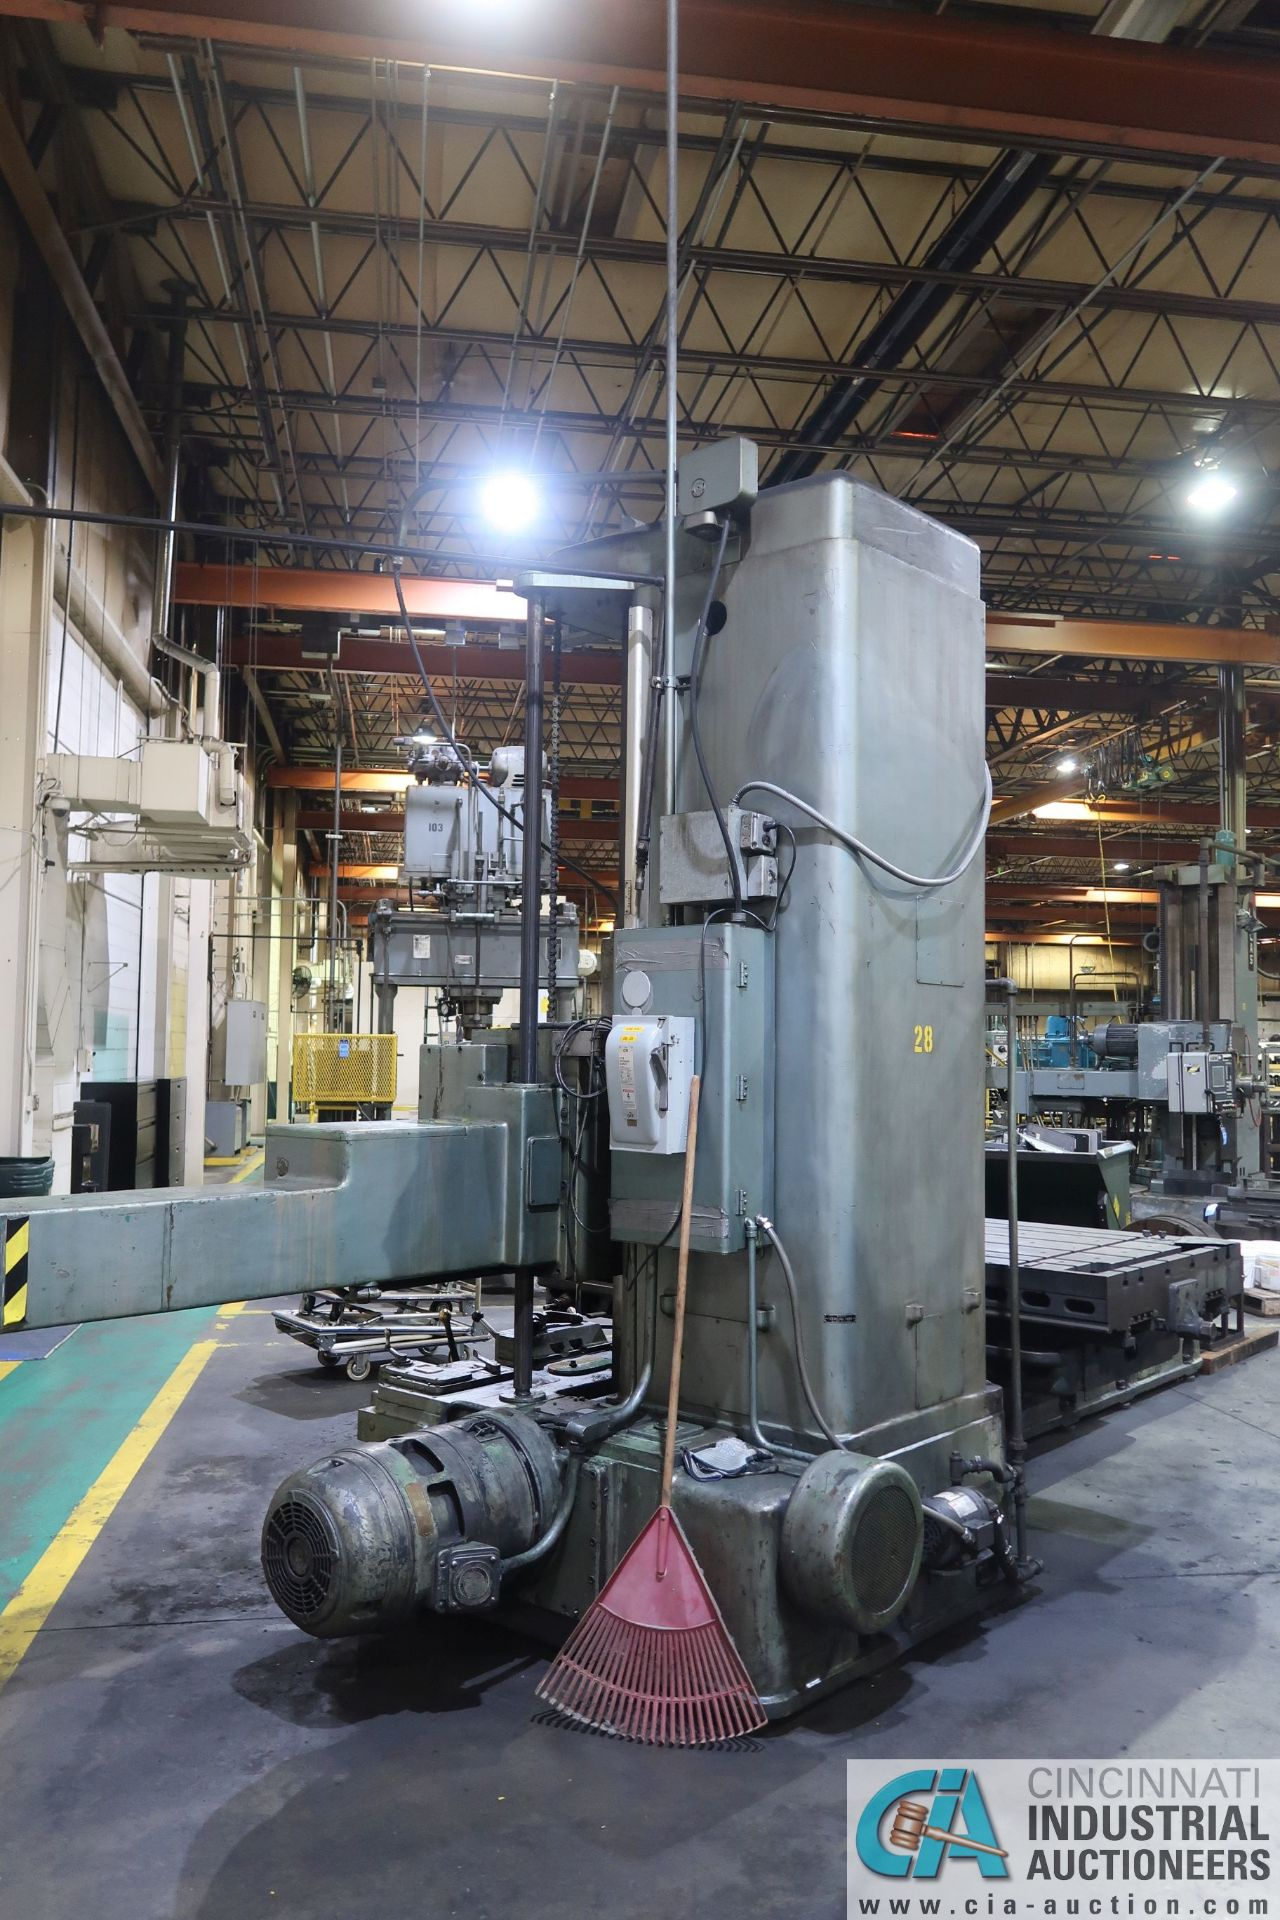 """GIDDINGS AND LEWIS MODEL 350T HORIZONTAL BORING MILL; S/N 150-90-65, 4' X 7' TABLE WITH (2) 24"""" FACE - Image 3 of 16"""